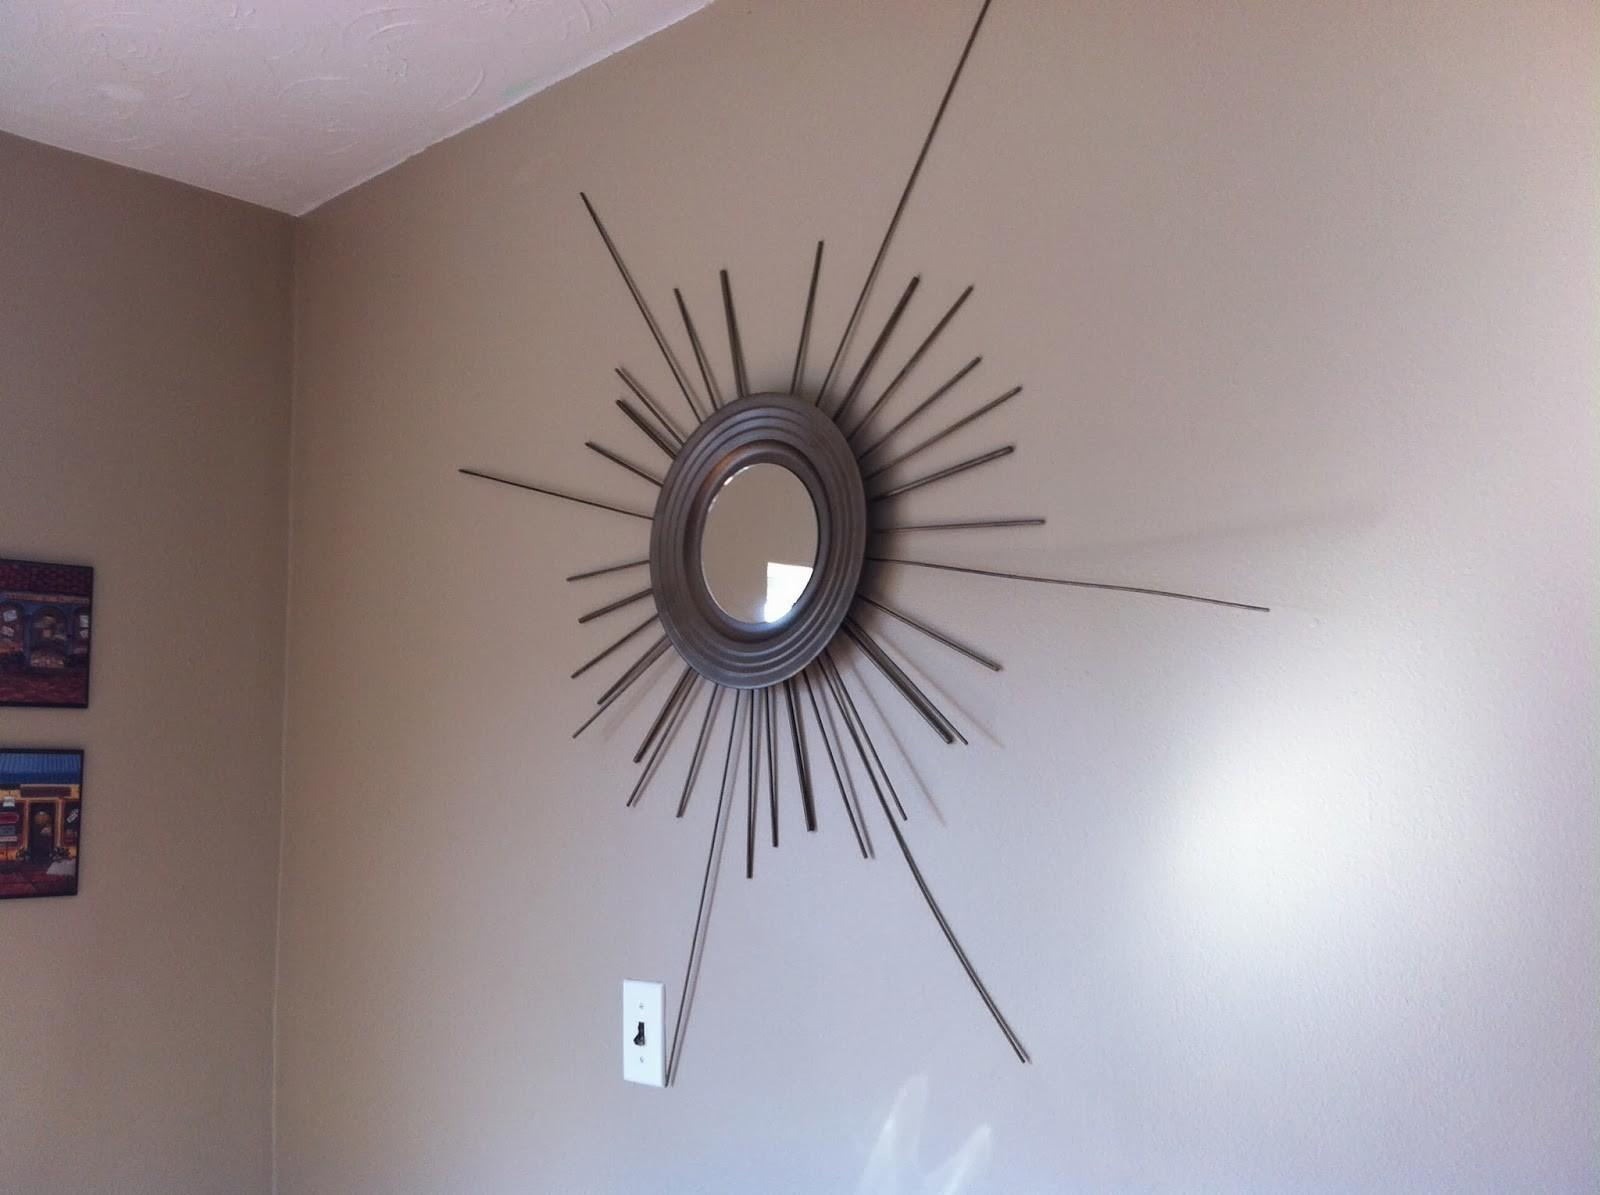 Diy Starburst Mirror Tutorial Home Owner Wannabe